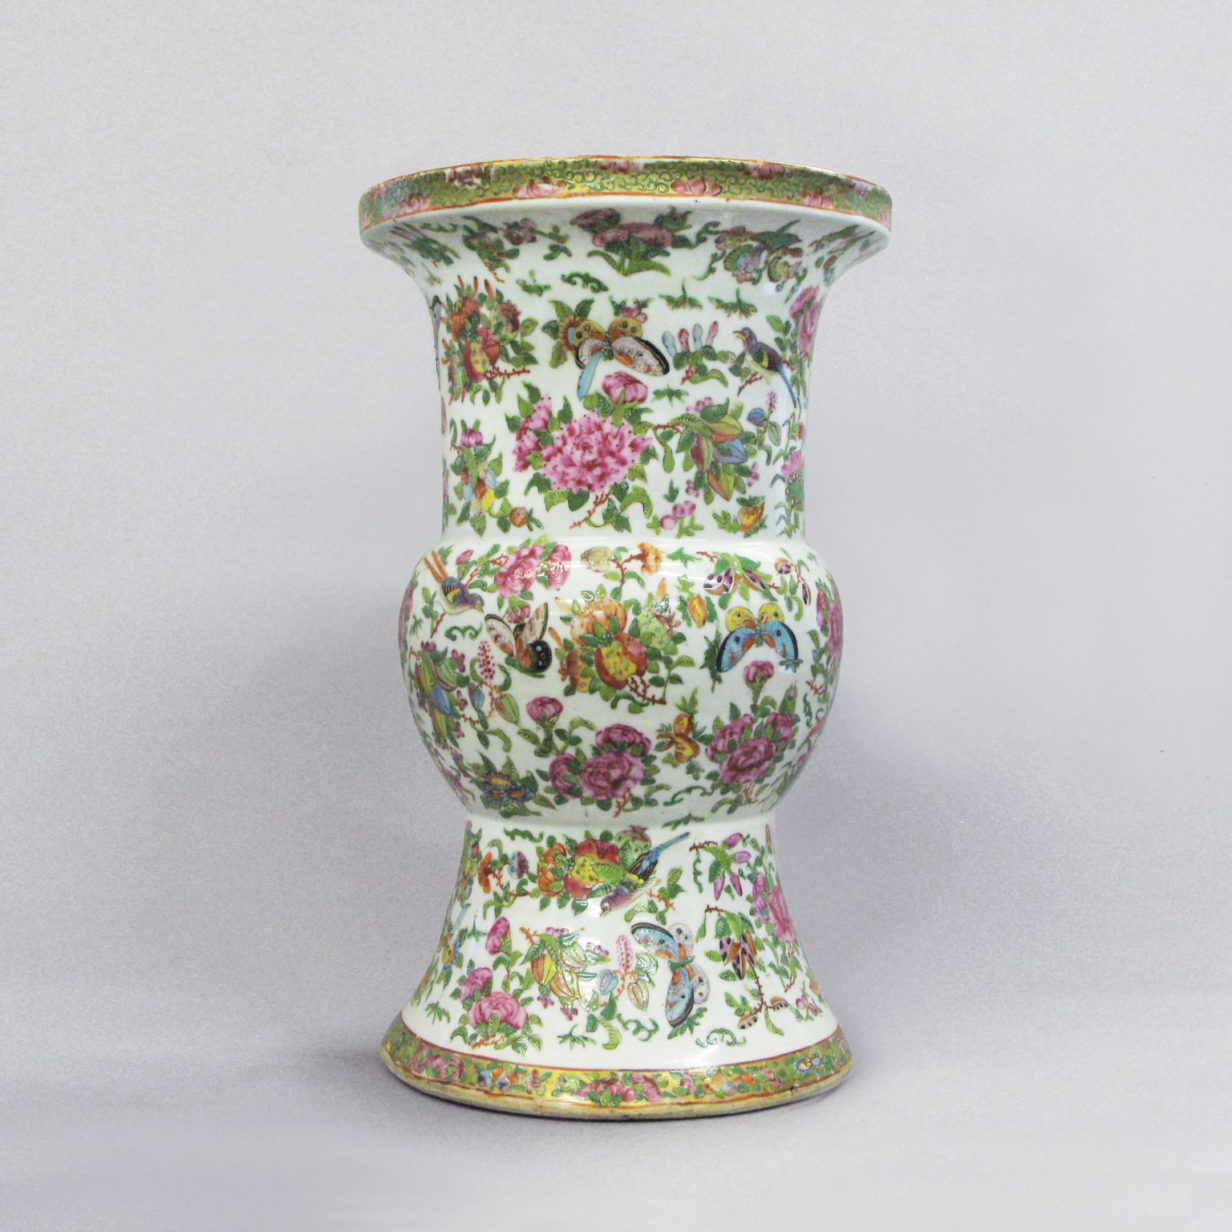 A Large Scale Qing Dynasty Famille Rose Beaker Vase